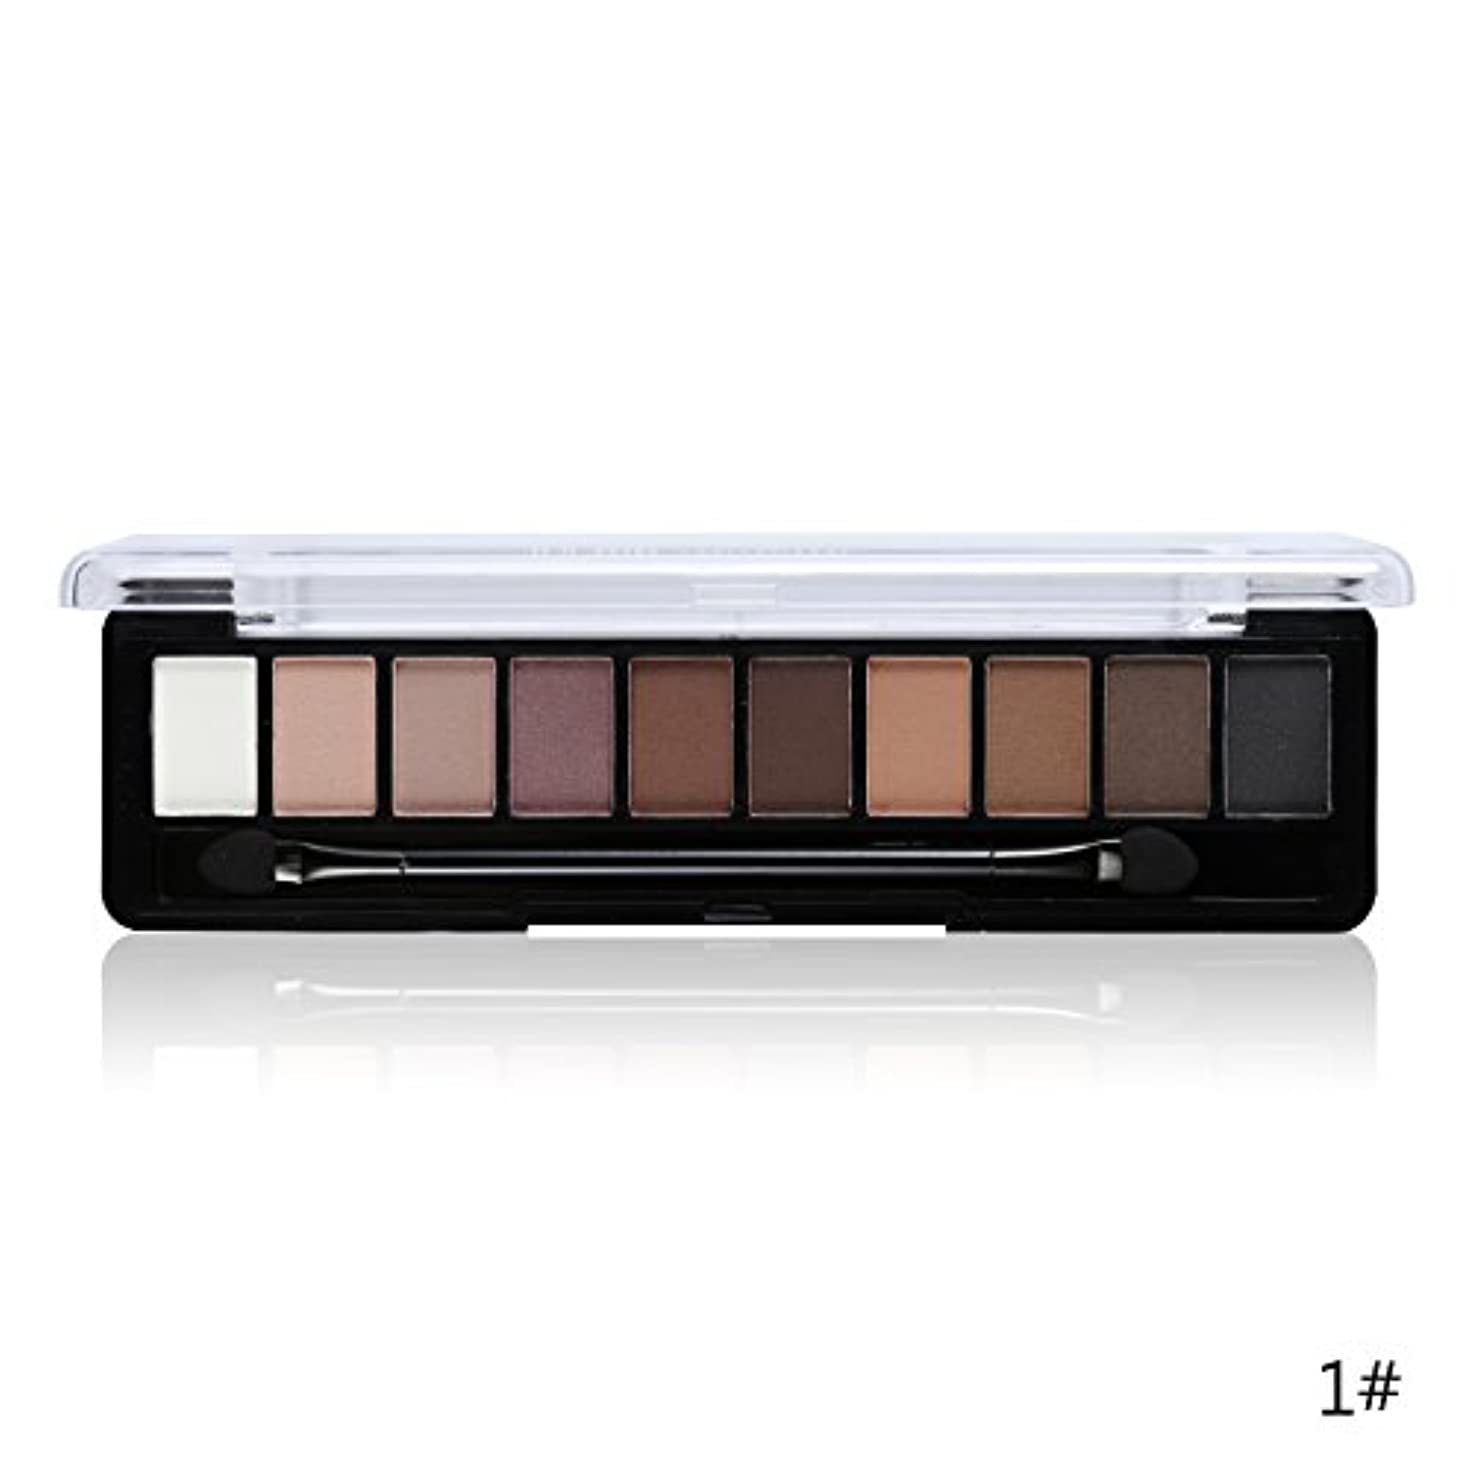 近々未知のスティーブンソン(1#) Professional Makeup Brand Earth Color 10 Colors Eyeshadow Palette Glitter Eye Palette Maquiagem Matte Silky Pigments Eye Shadow